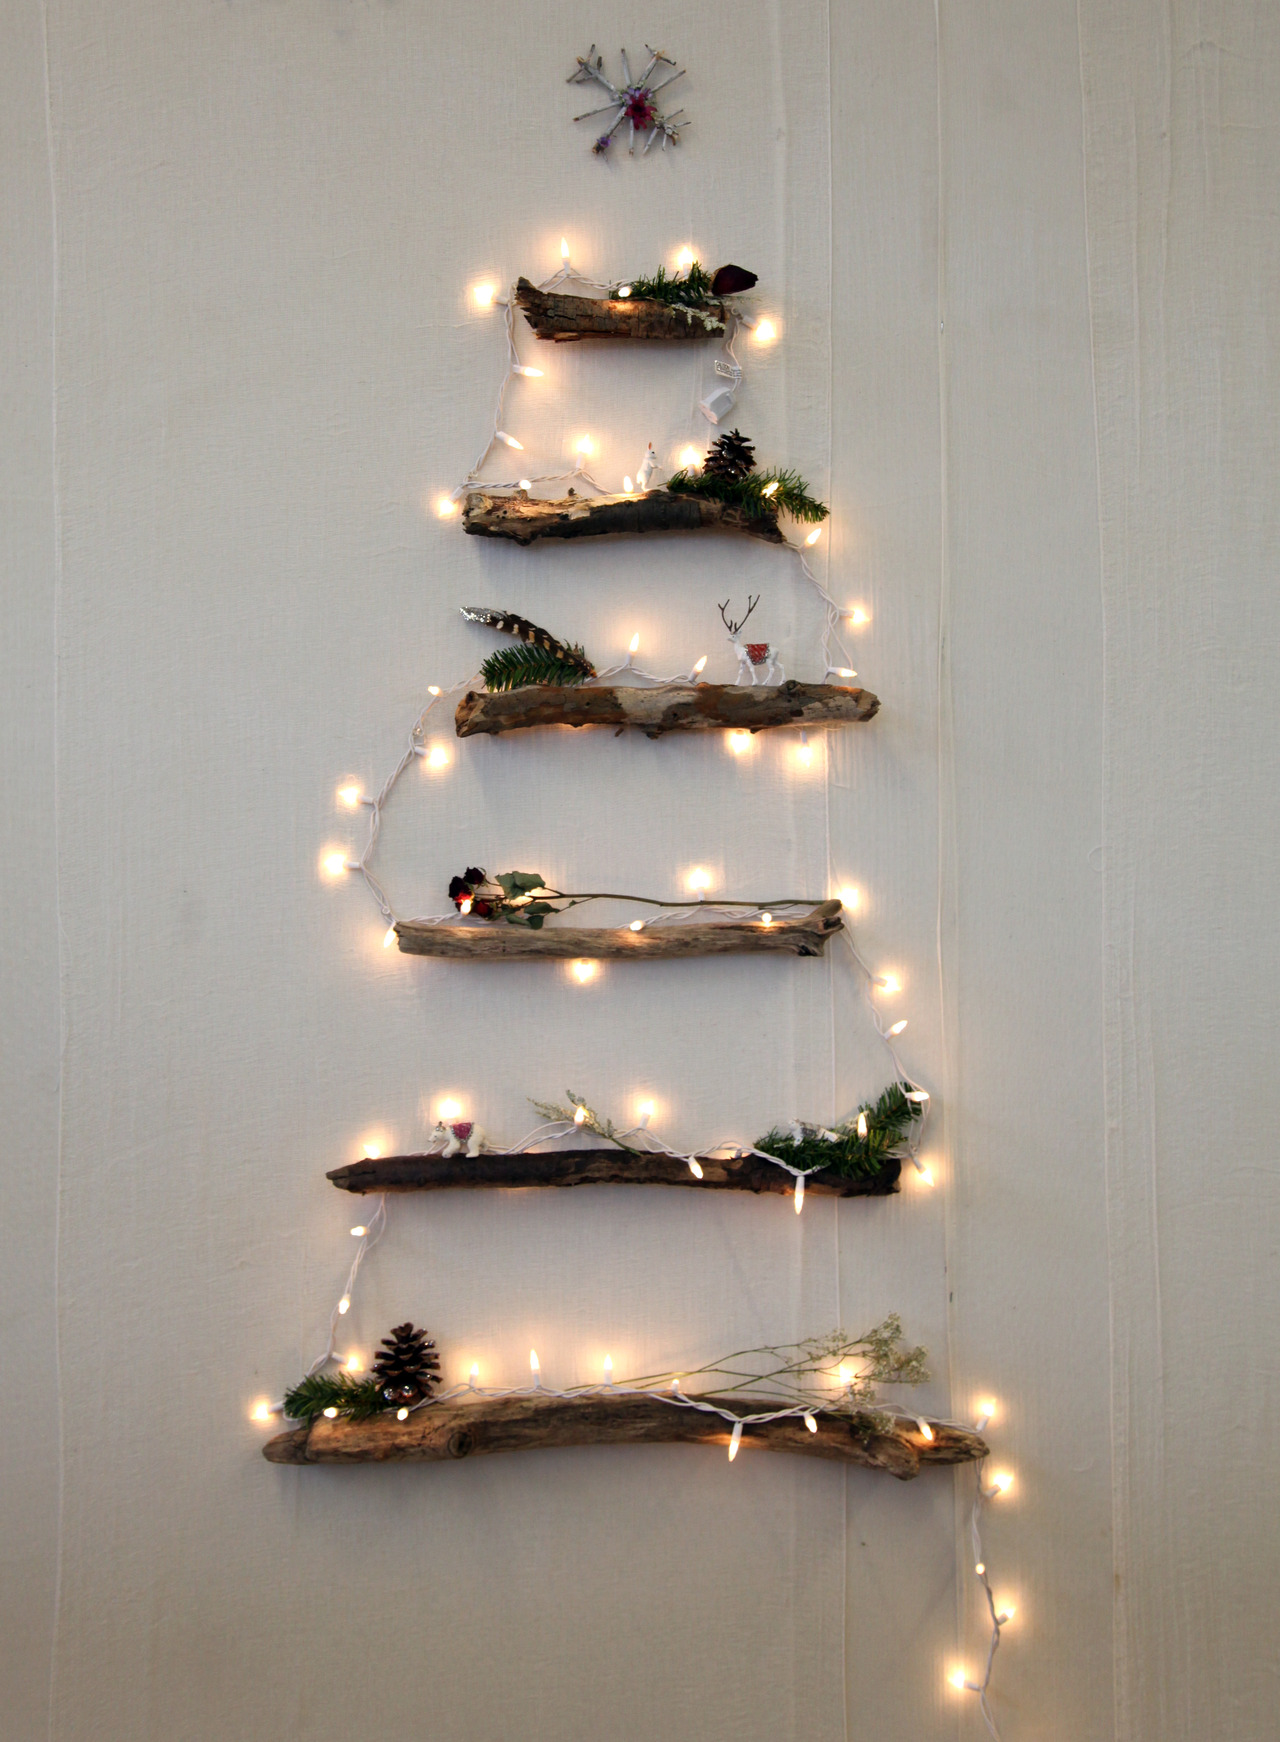 AD-Awesome-String-Light-DIYs-For-Any-Occasion-05-2